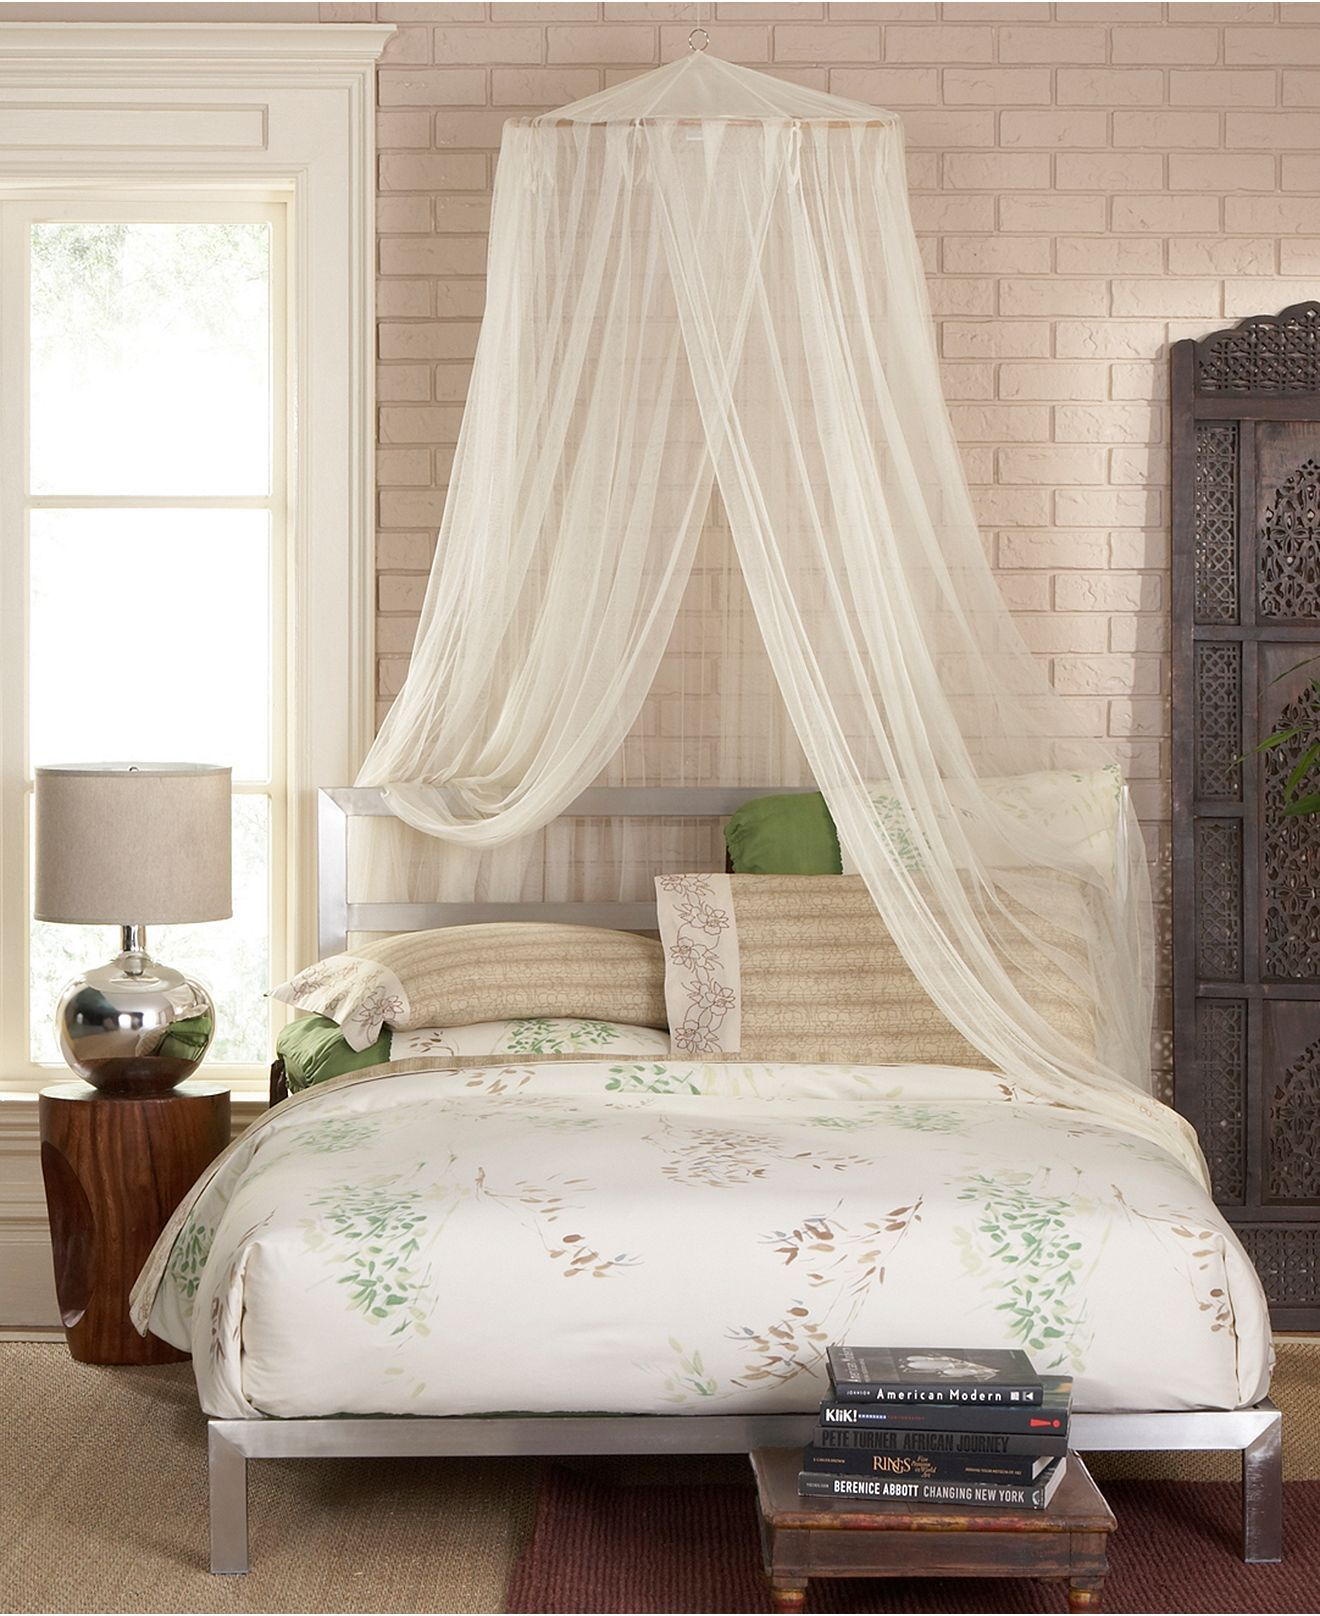 Ceiling Canopy Bedroom: Mombasa Bedding, Siam Canopy